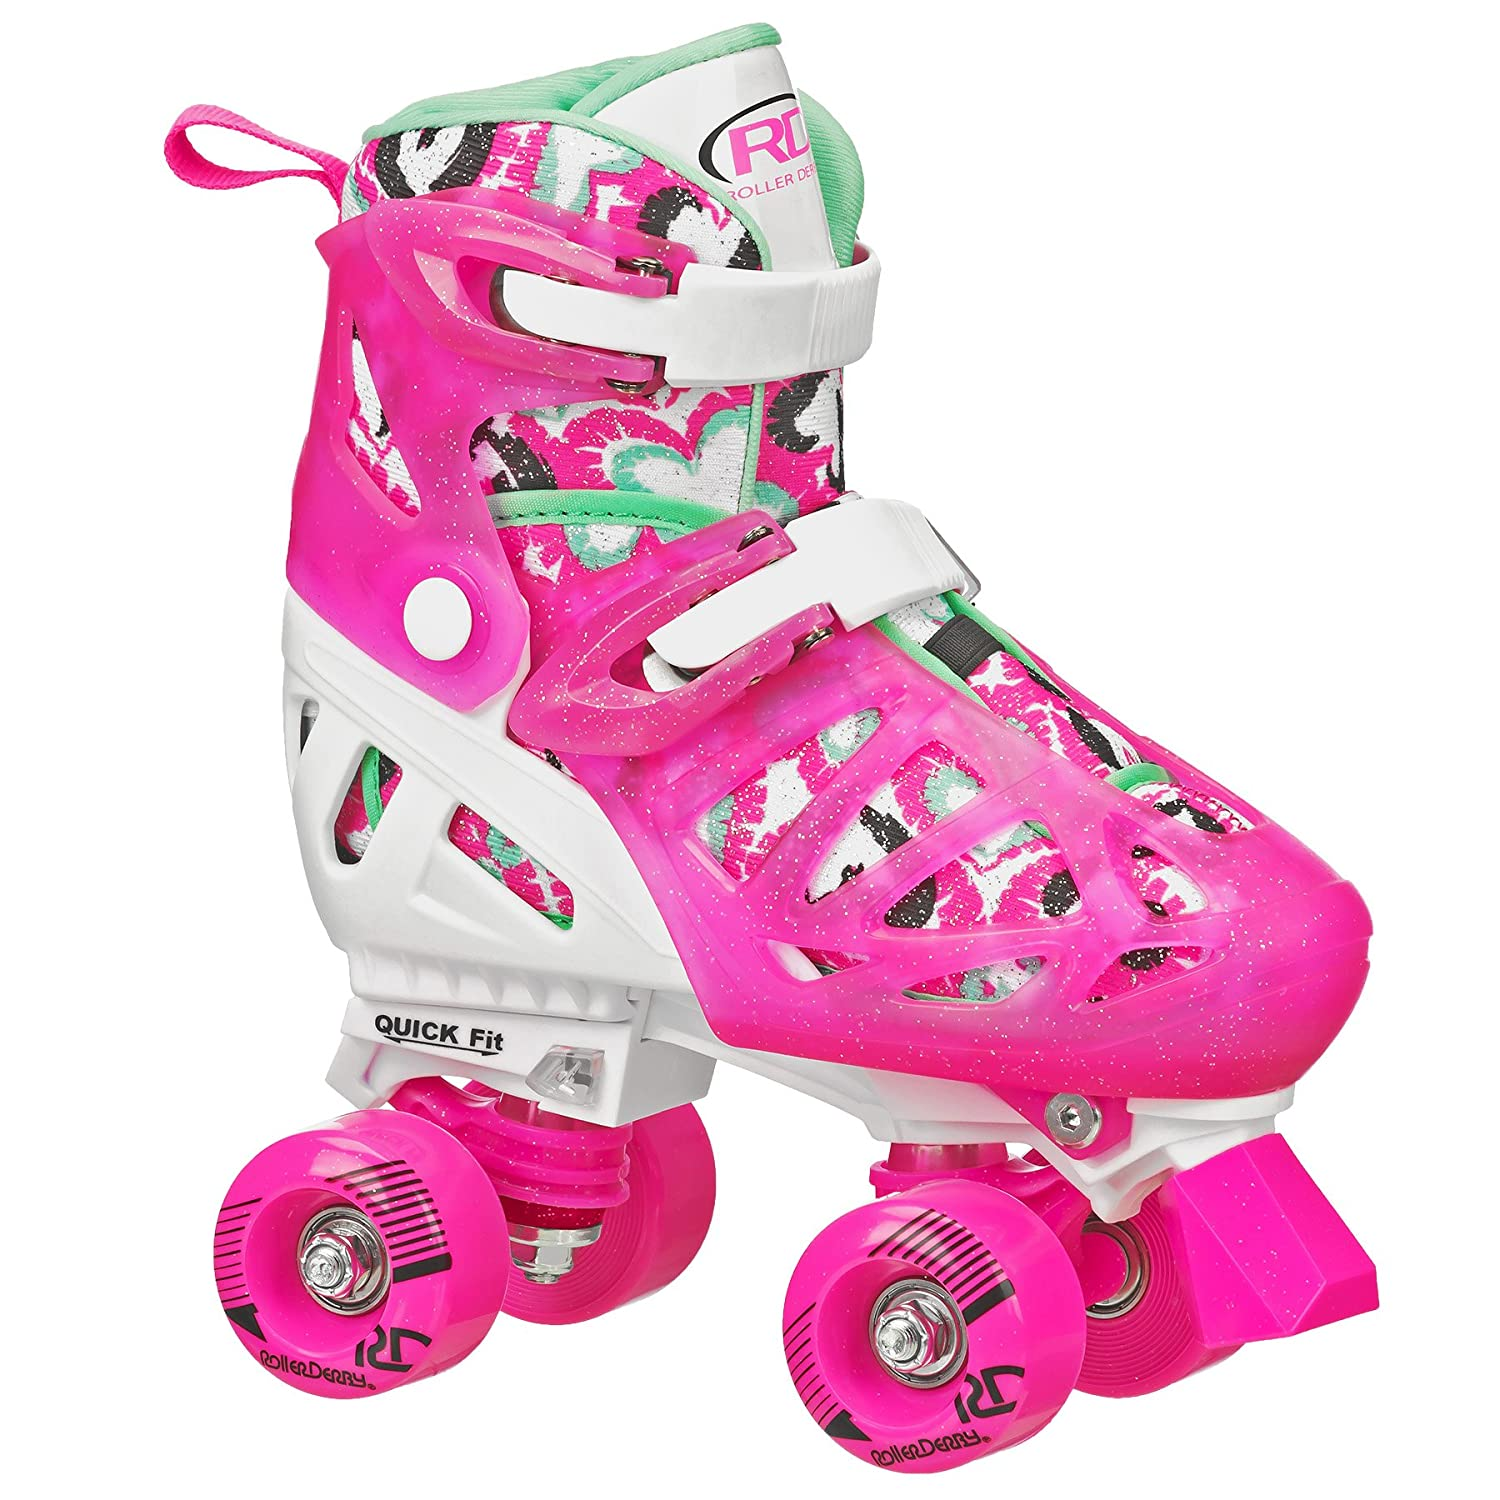 Top 10 Best Roller Skates (2020 Reviews & Buying Guide) 3